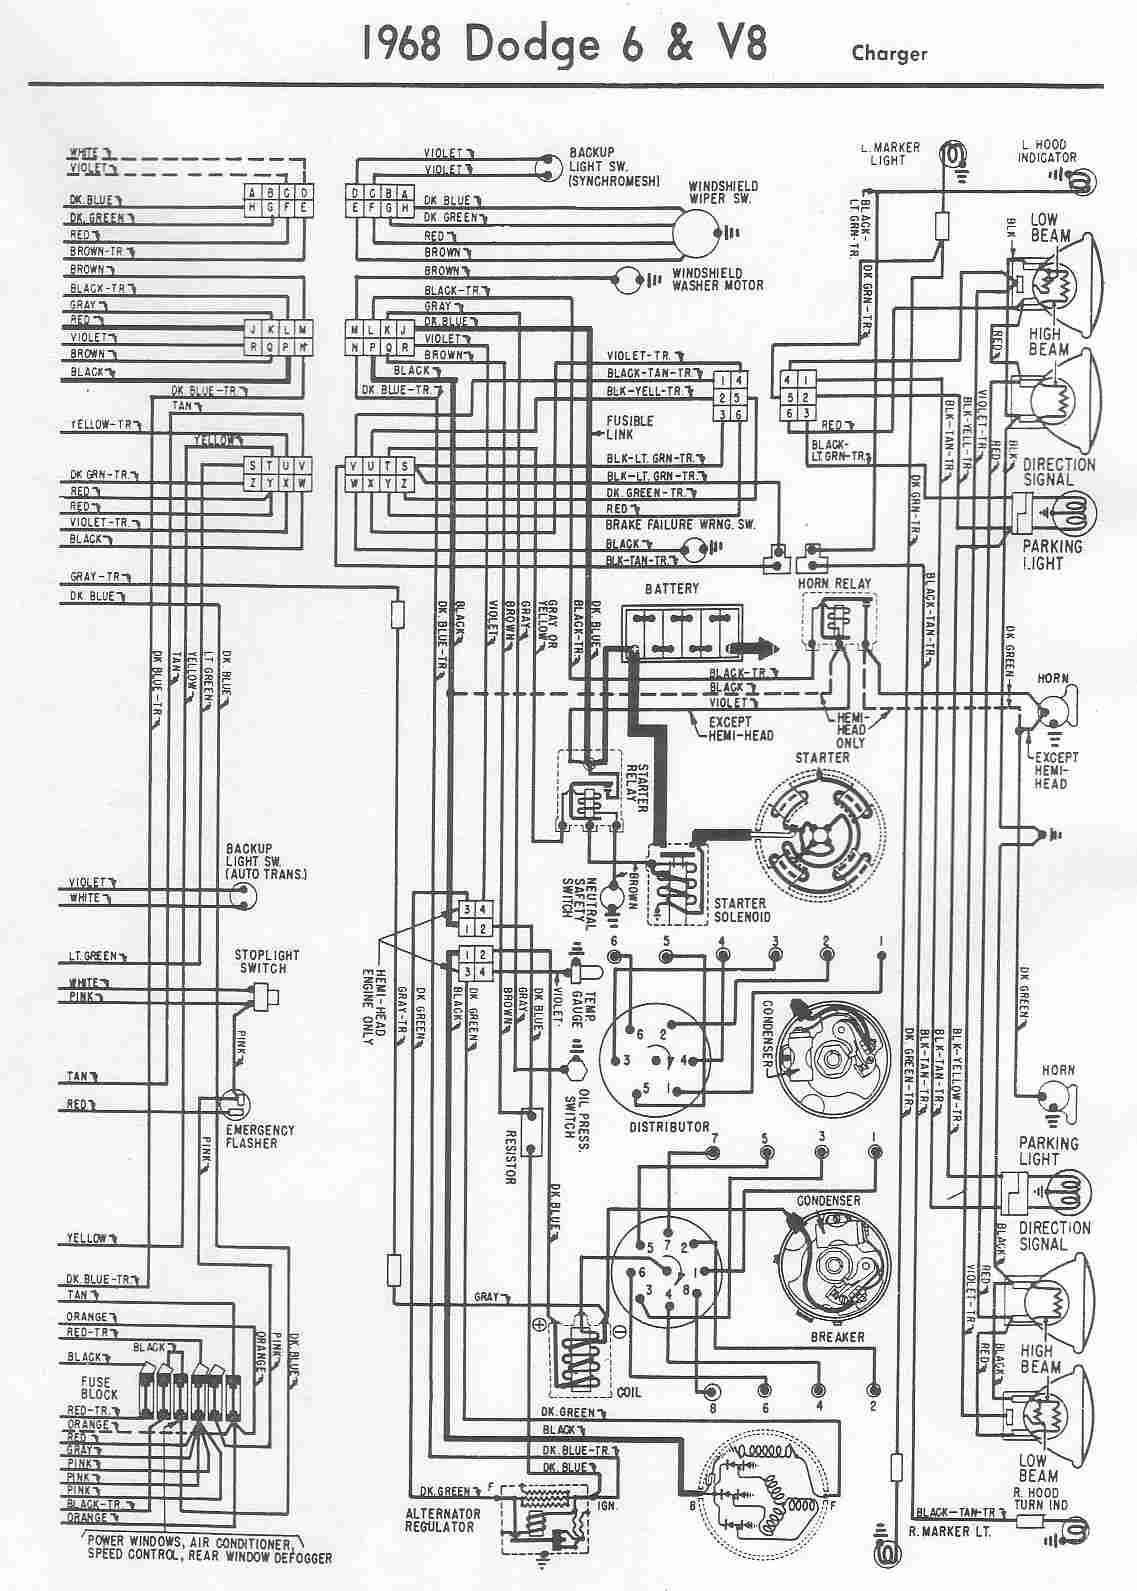 charger electrical wiring diagram of 1968 dodge 6 and v8?t=1508404771 dodge car manuals, wiring diagrams pdf & fault codes Multi Speed Blower Motor Wiring at readyjetset.co